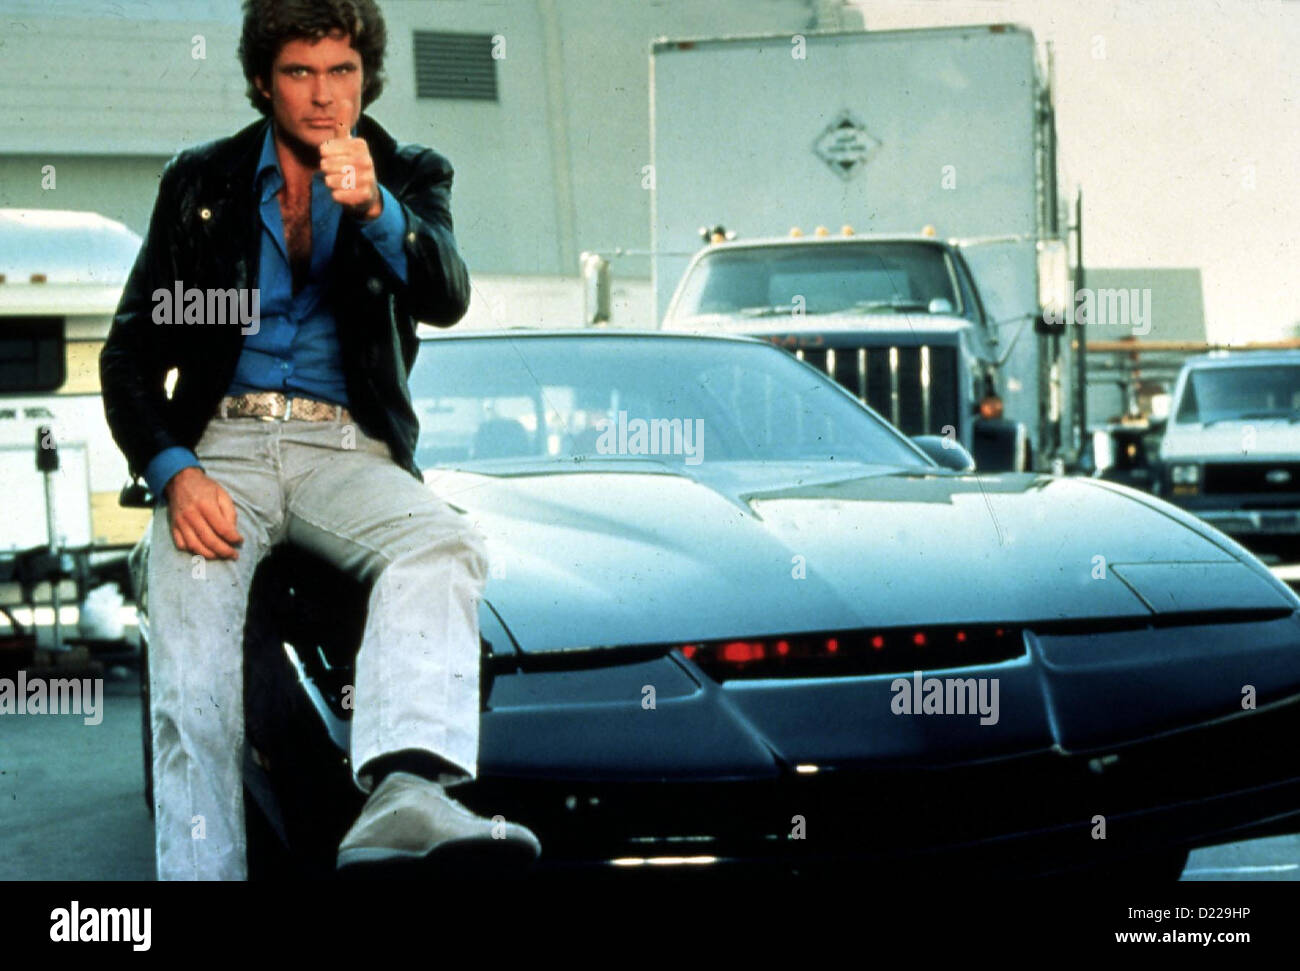 david hasselhoff knight rider car images galleries with a bite. Black Bedroom Furniture Sets. Home Design Ideas